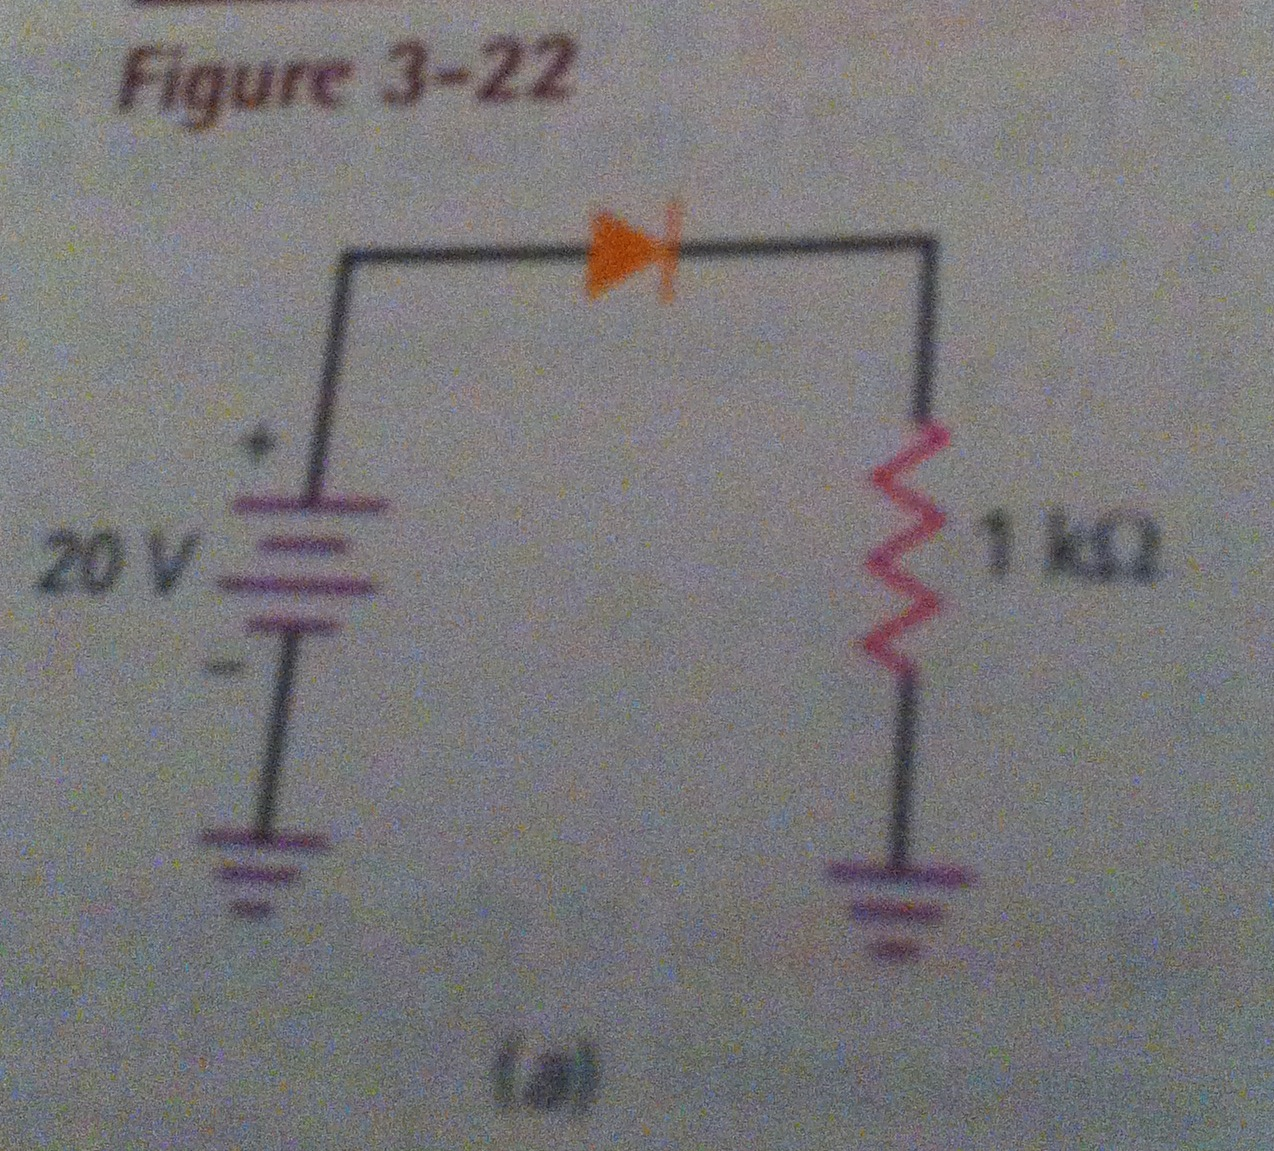 Image for Figure 3-22 I need help calculating the load current, load voltage, load power, diode power, and total power o